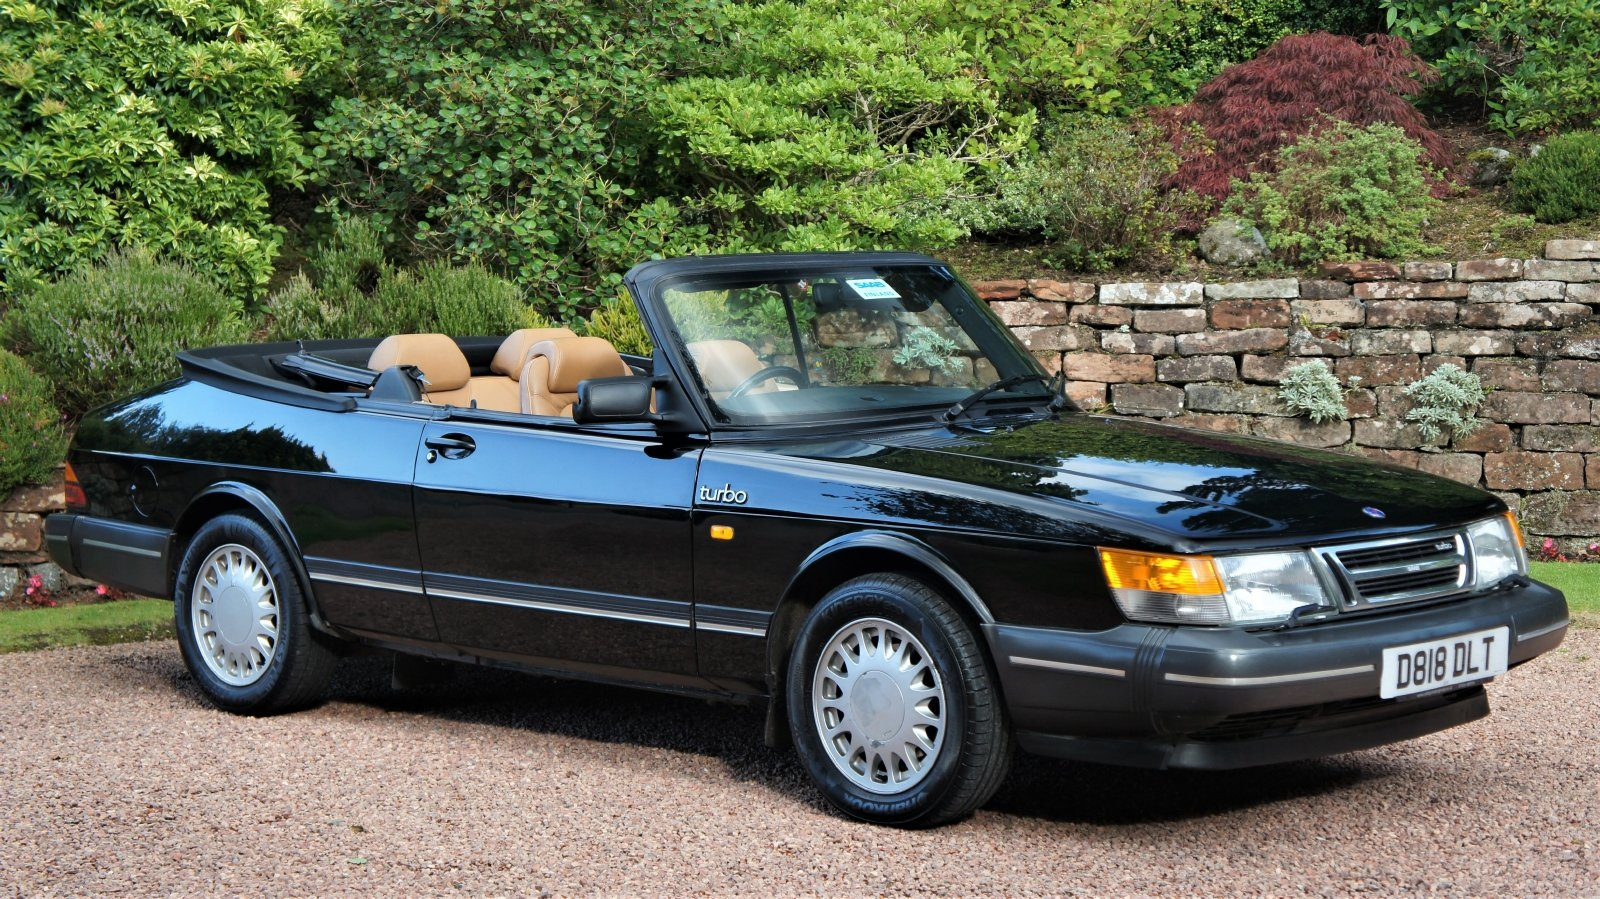 1987 SAAB 900 16 VALVE TURBO CONVERTIBLE - 74000 MILES SOLD (picture 1 of 6)